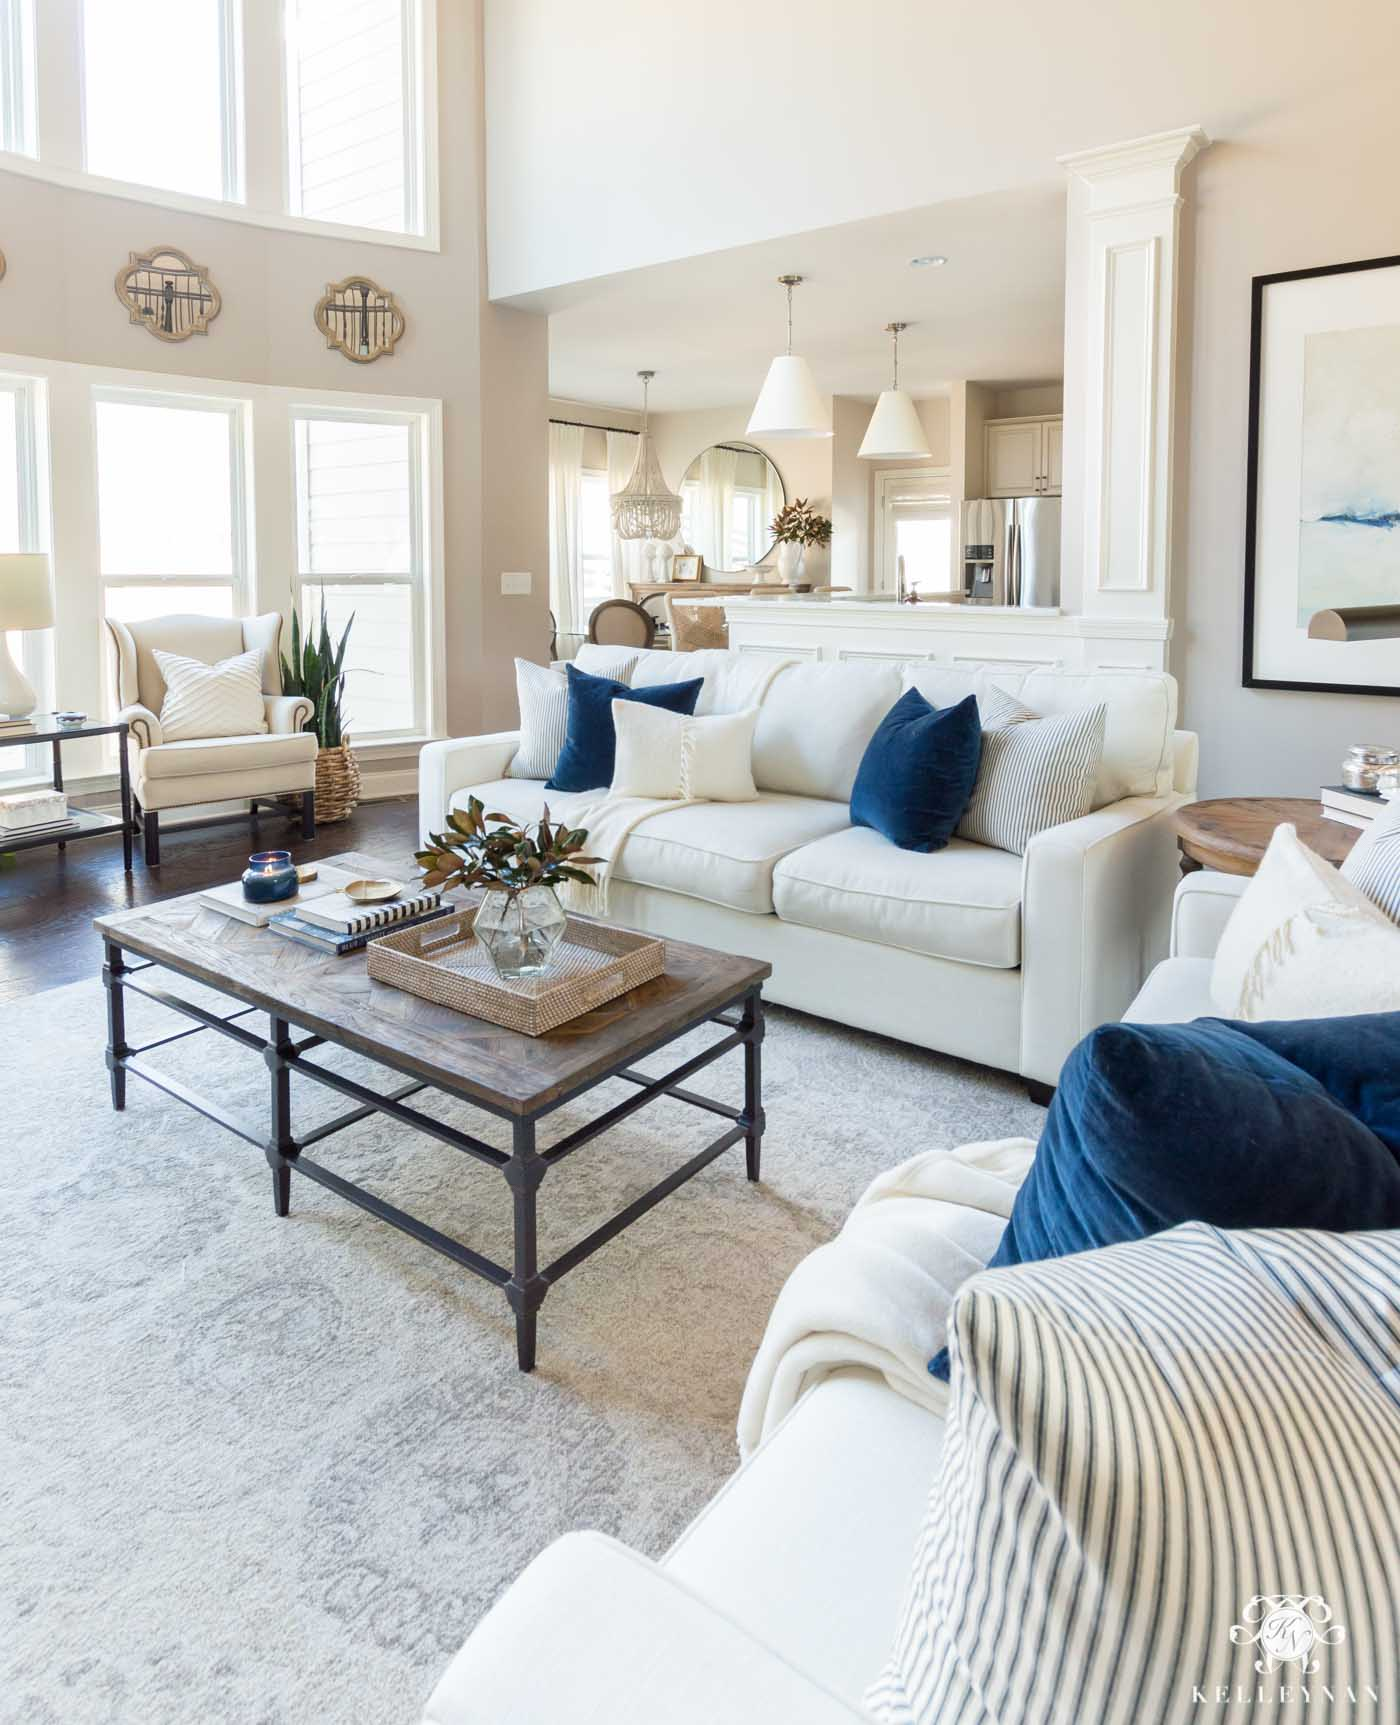 Open concept living room with blue and white decor